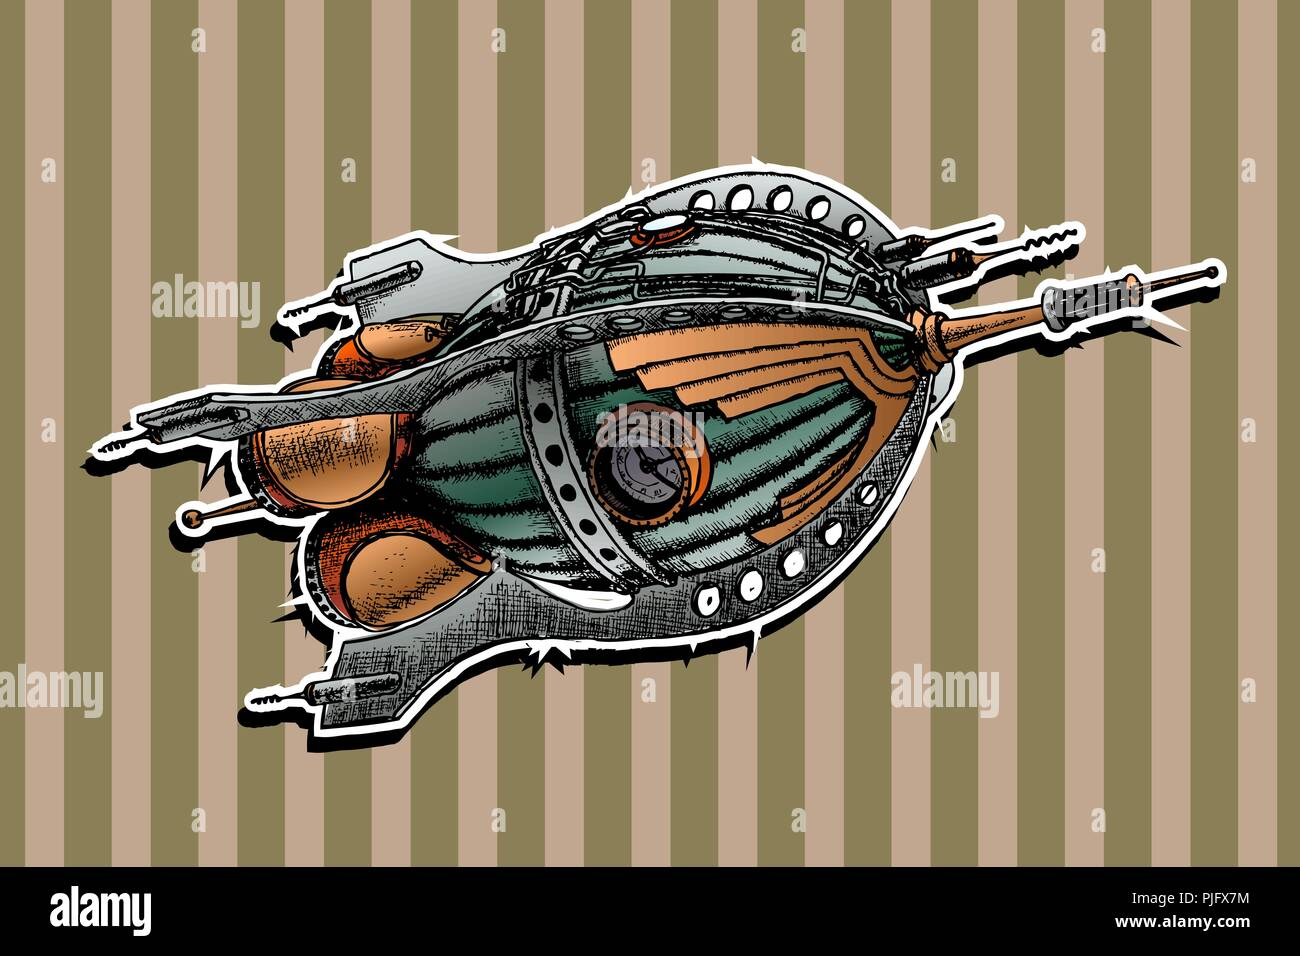 steampunk rocket. Vector illustration. Painted by hand - Stock Image